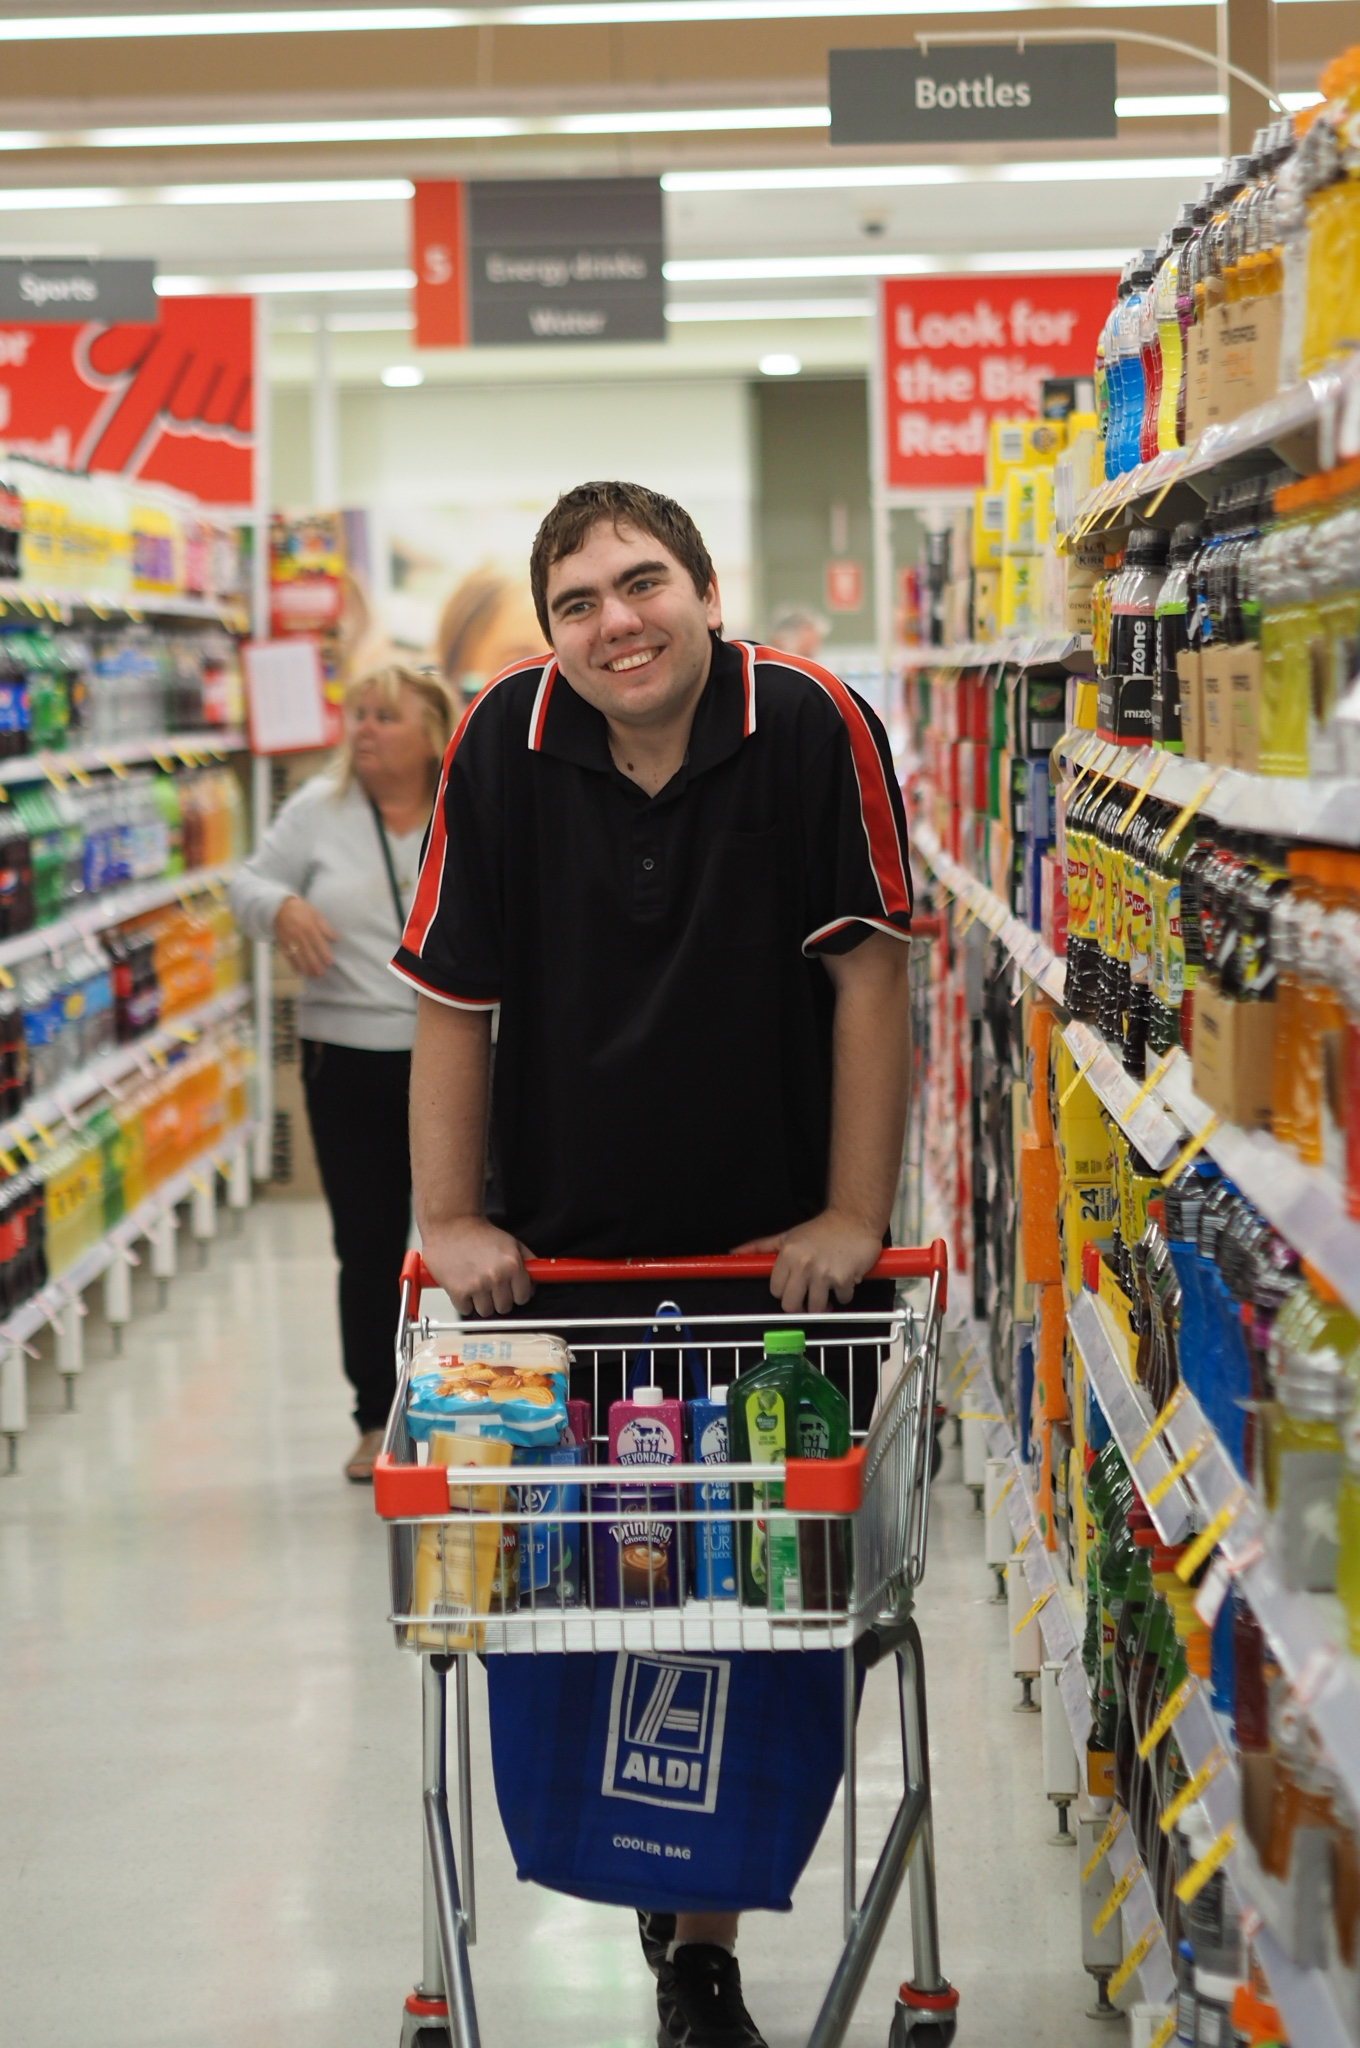 Josh pushing a shopping trolley at the supermarket